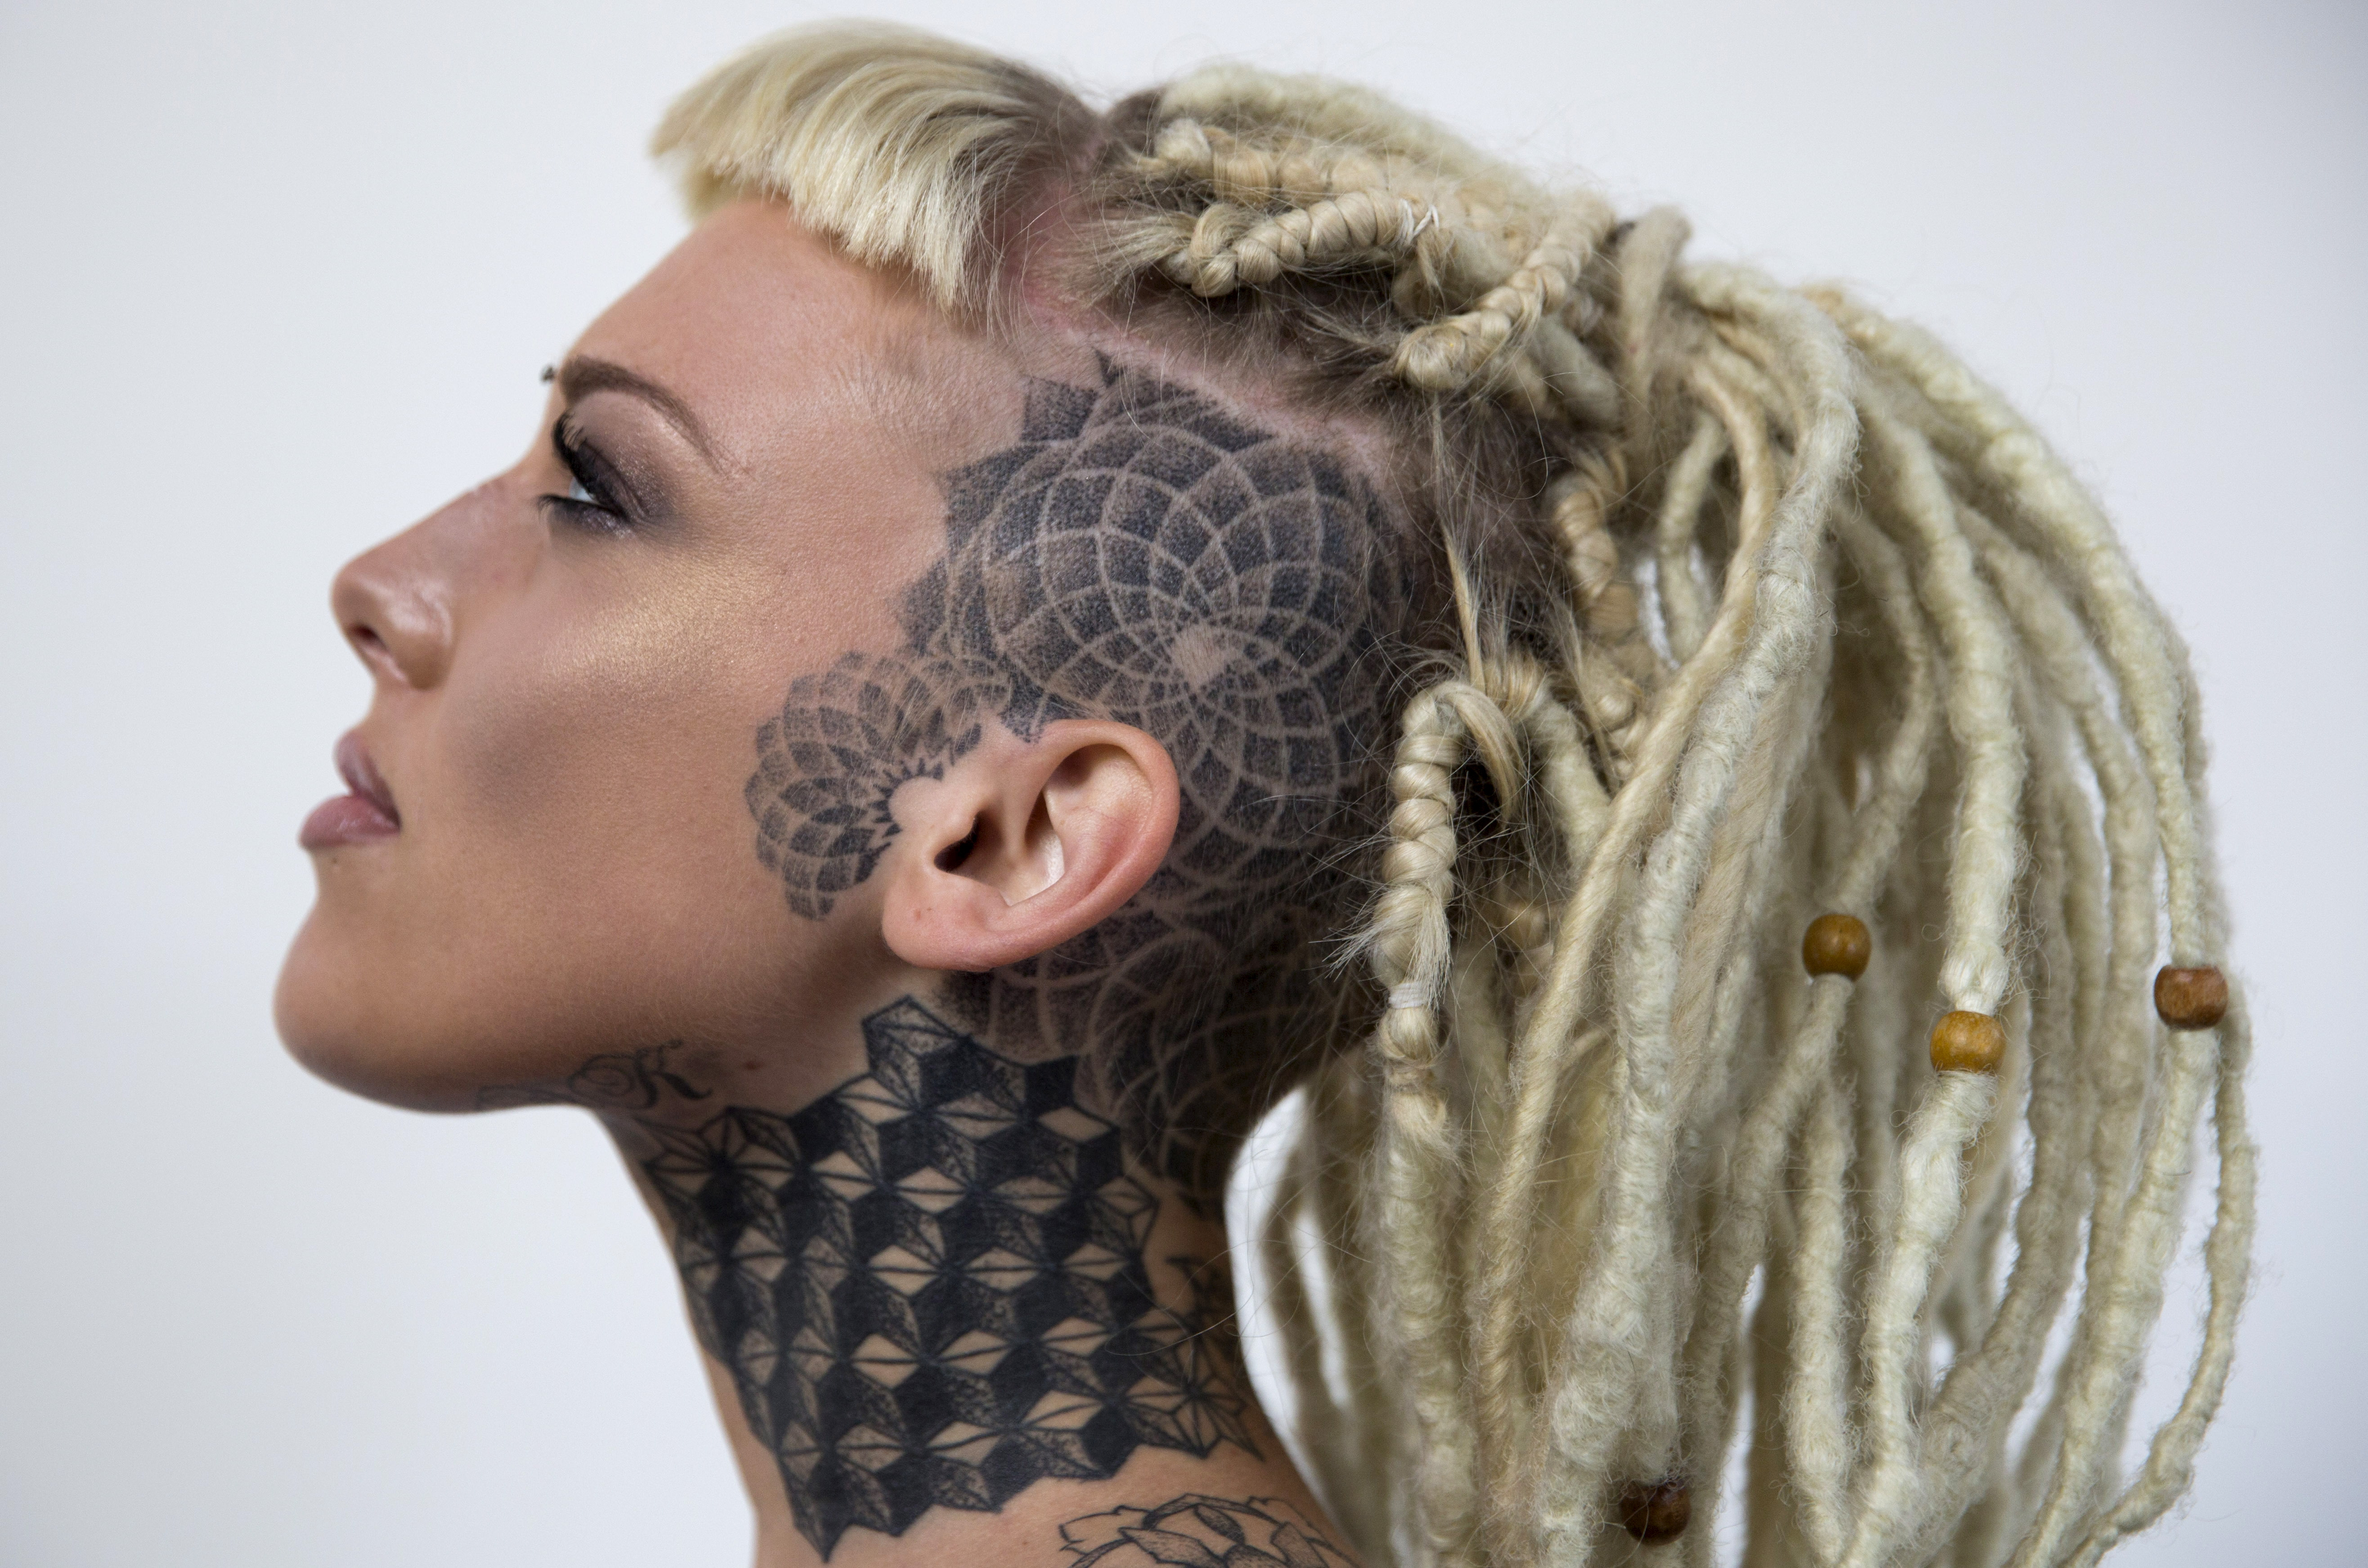 college women with 4 or more tattoos have higher self